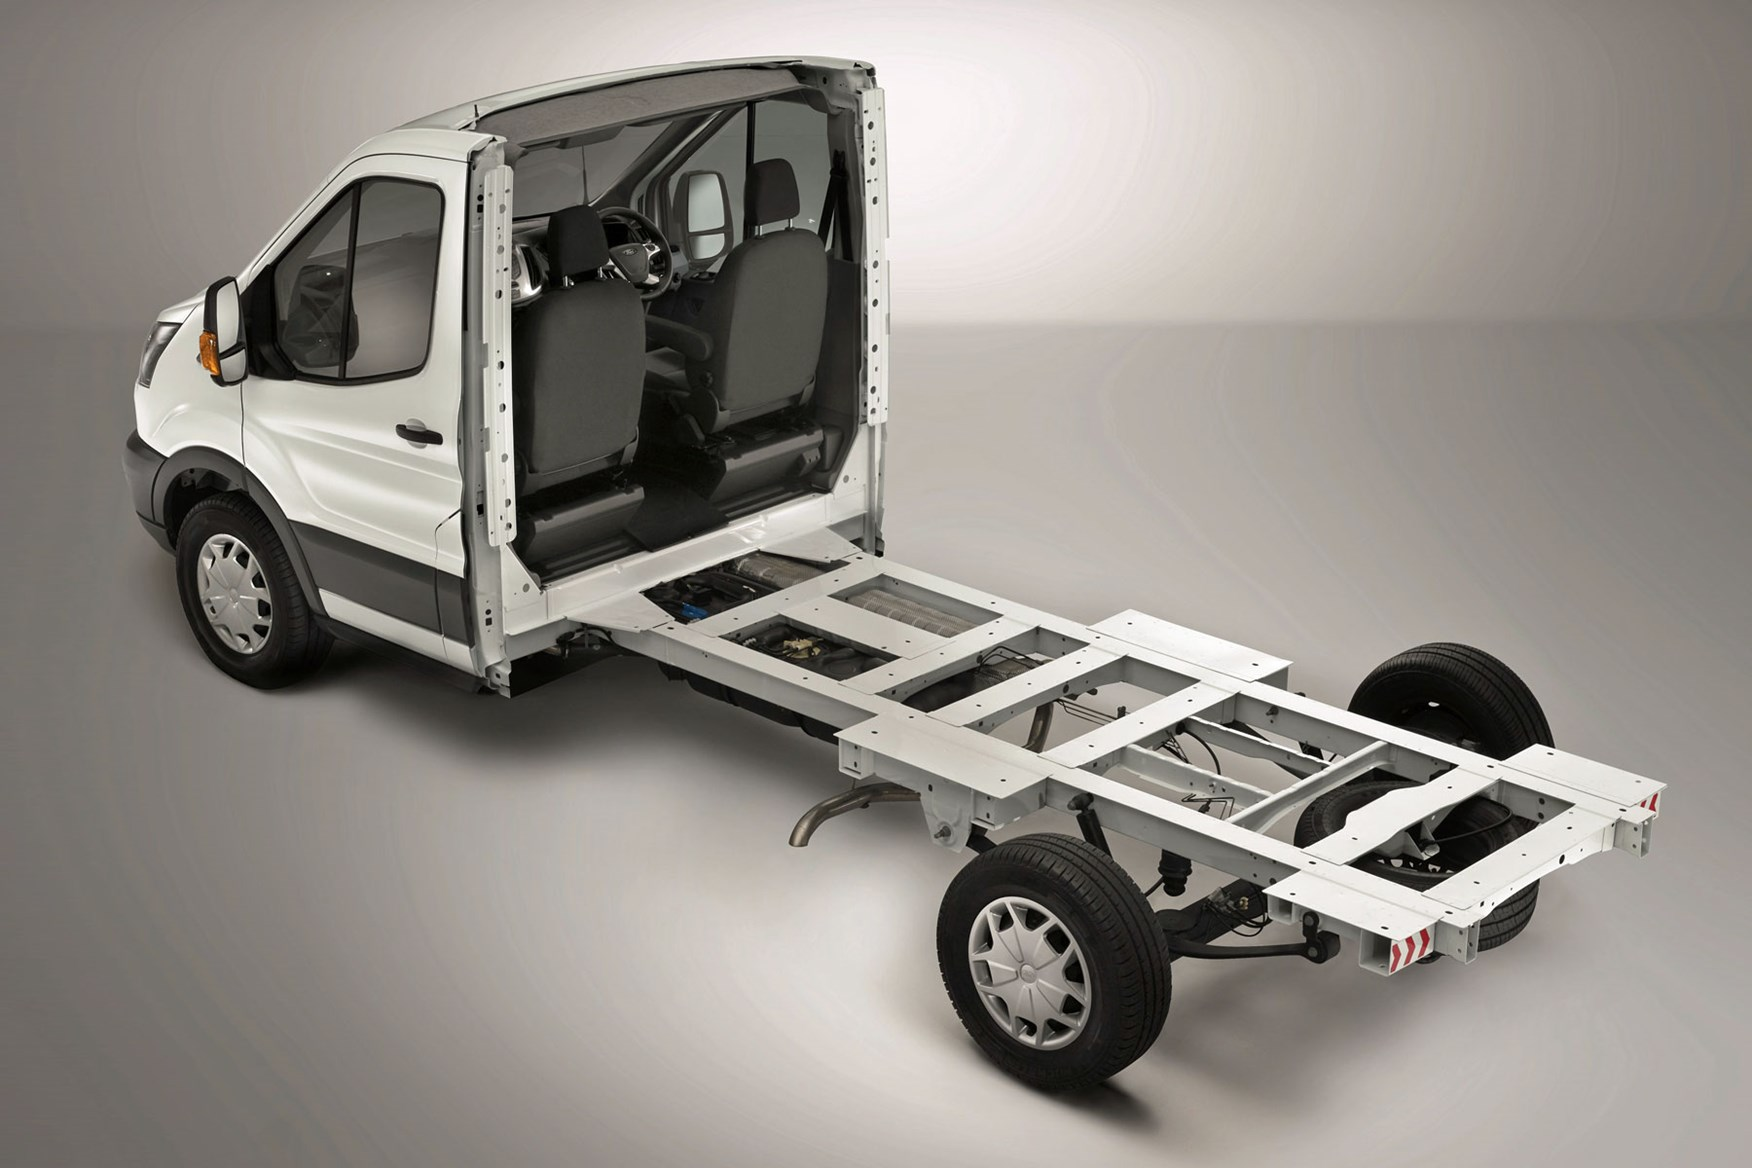 Ford Transit van dimensions, capacity, payload, volume, towing | Parkers